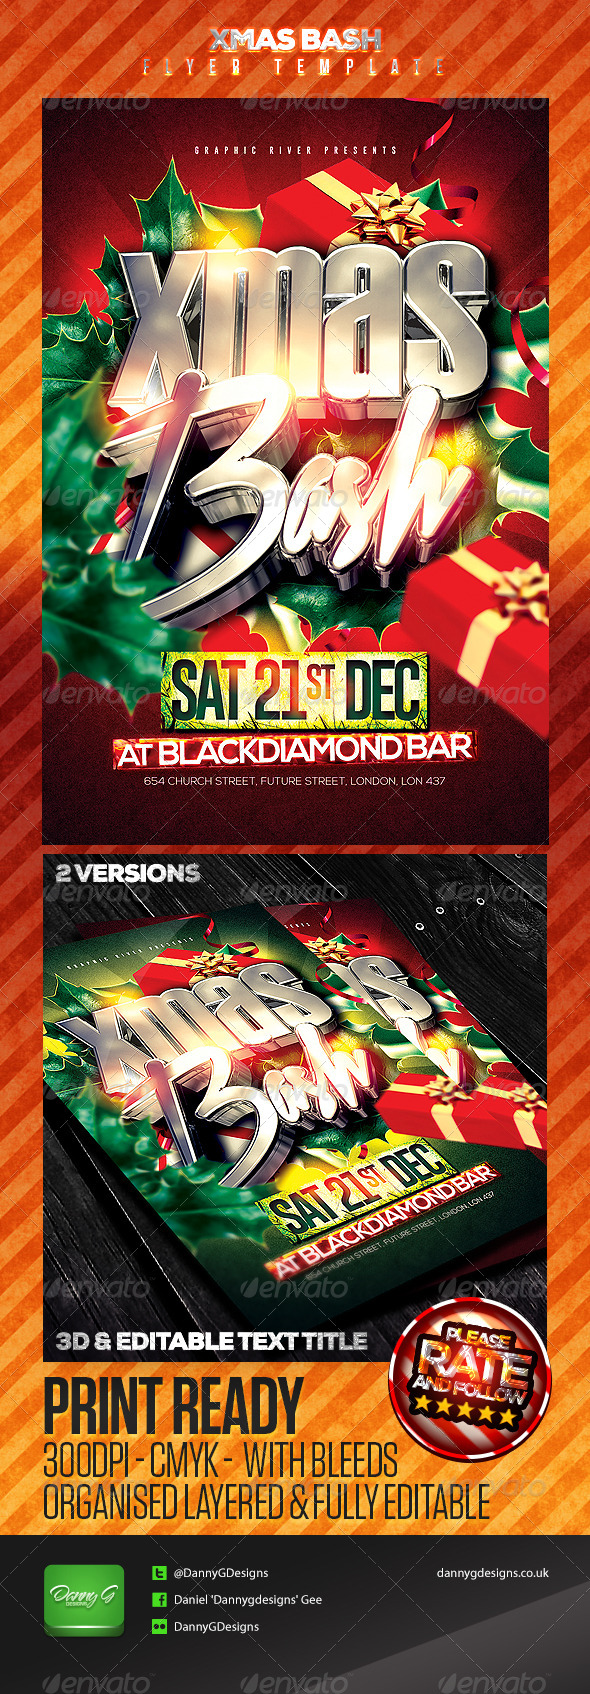 Xmas Bash Flyer Template - Clubs & Parties Events